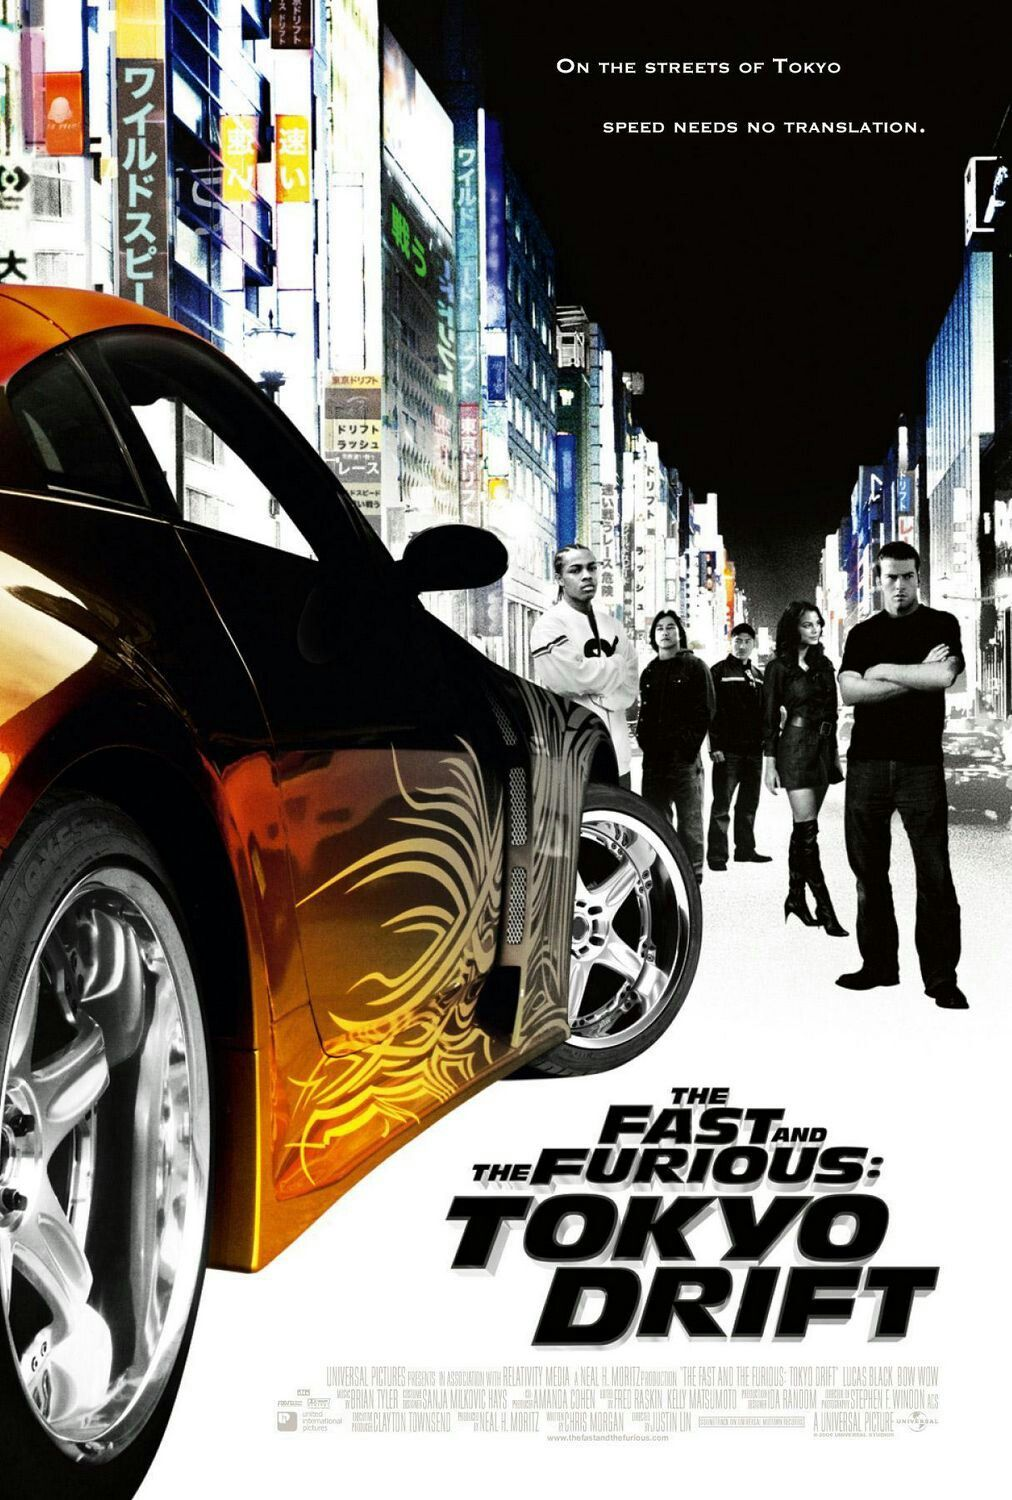 The Fast And The Furious, Tokyo Drift ( Volume 3 )